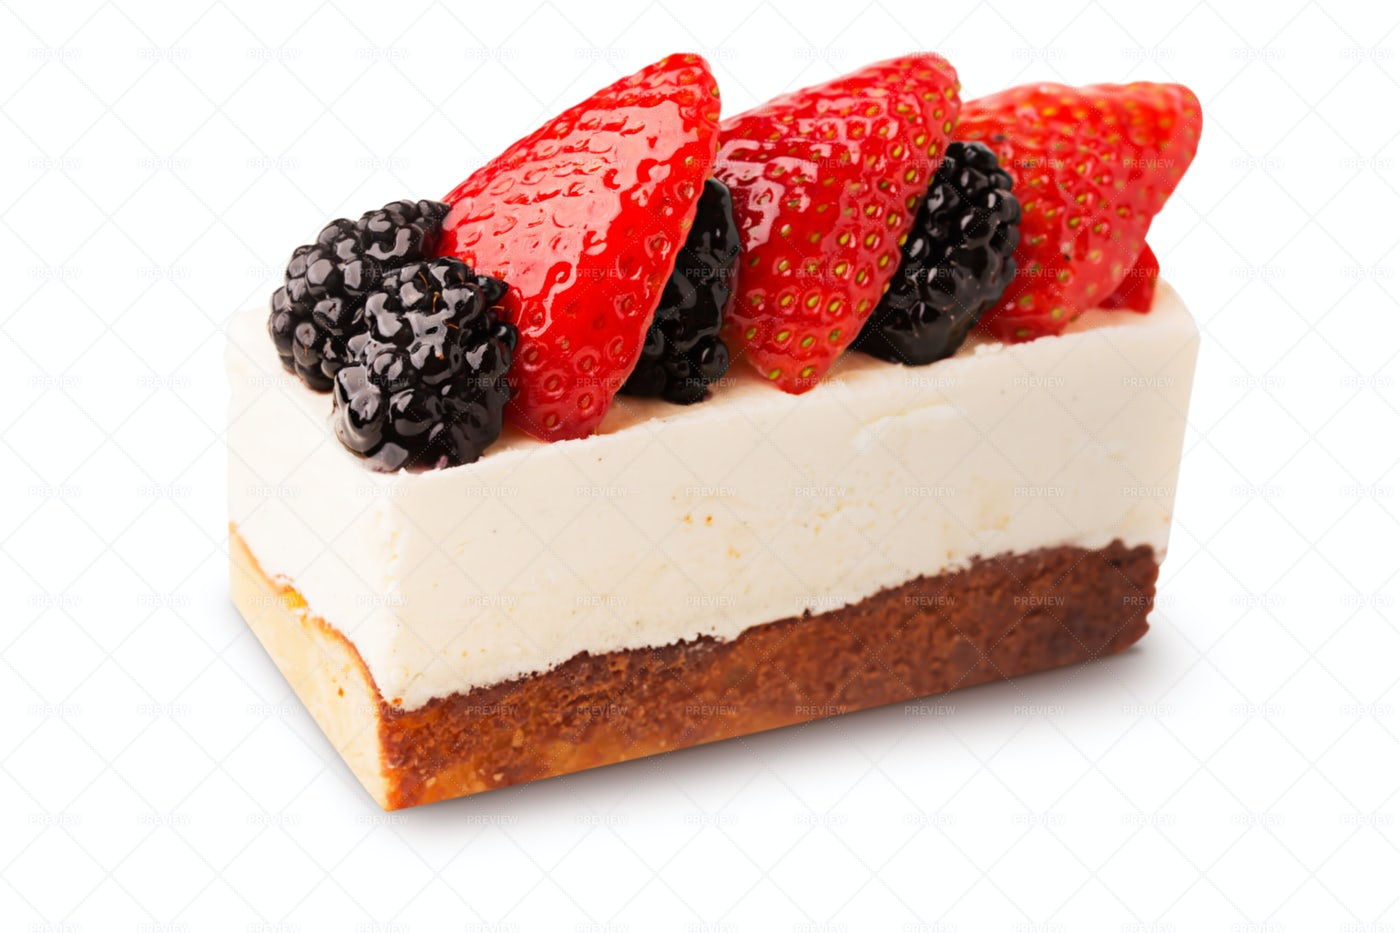 French Cake With Berries: Stock Photos